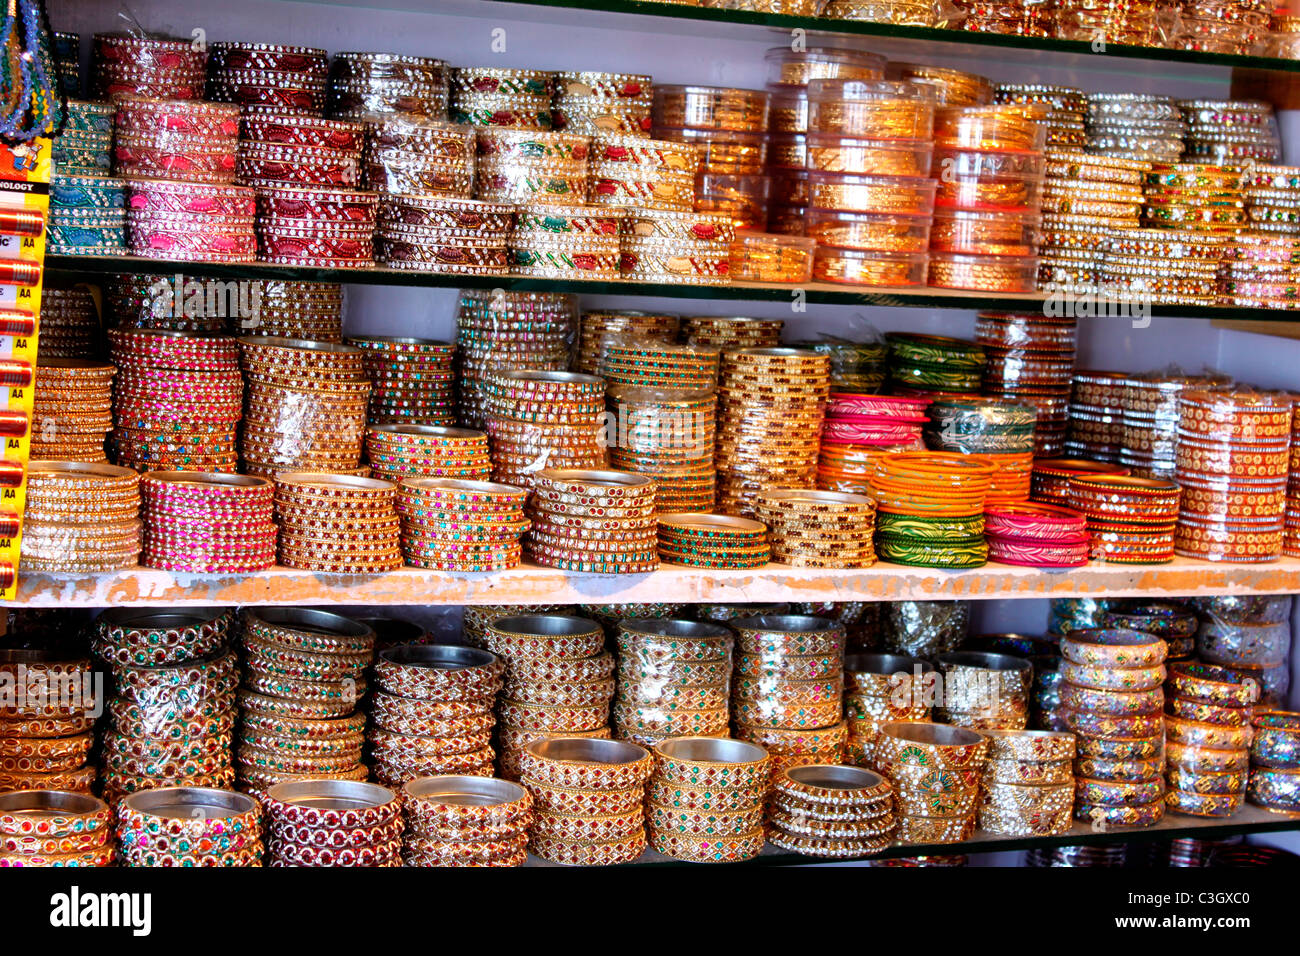 Indian Bangles on display - Stock Image